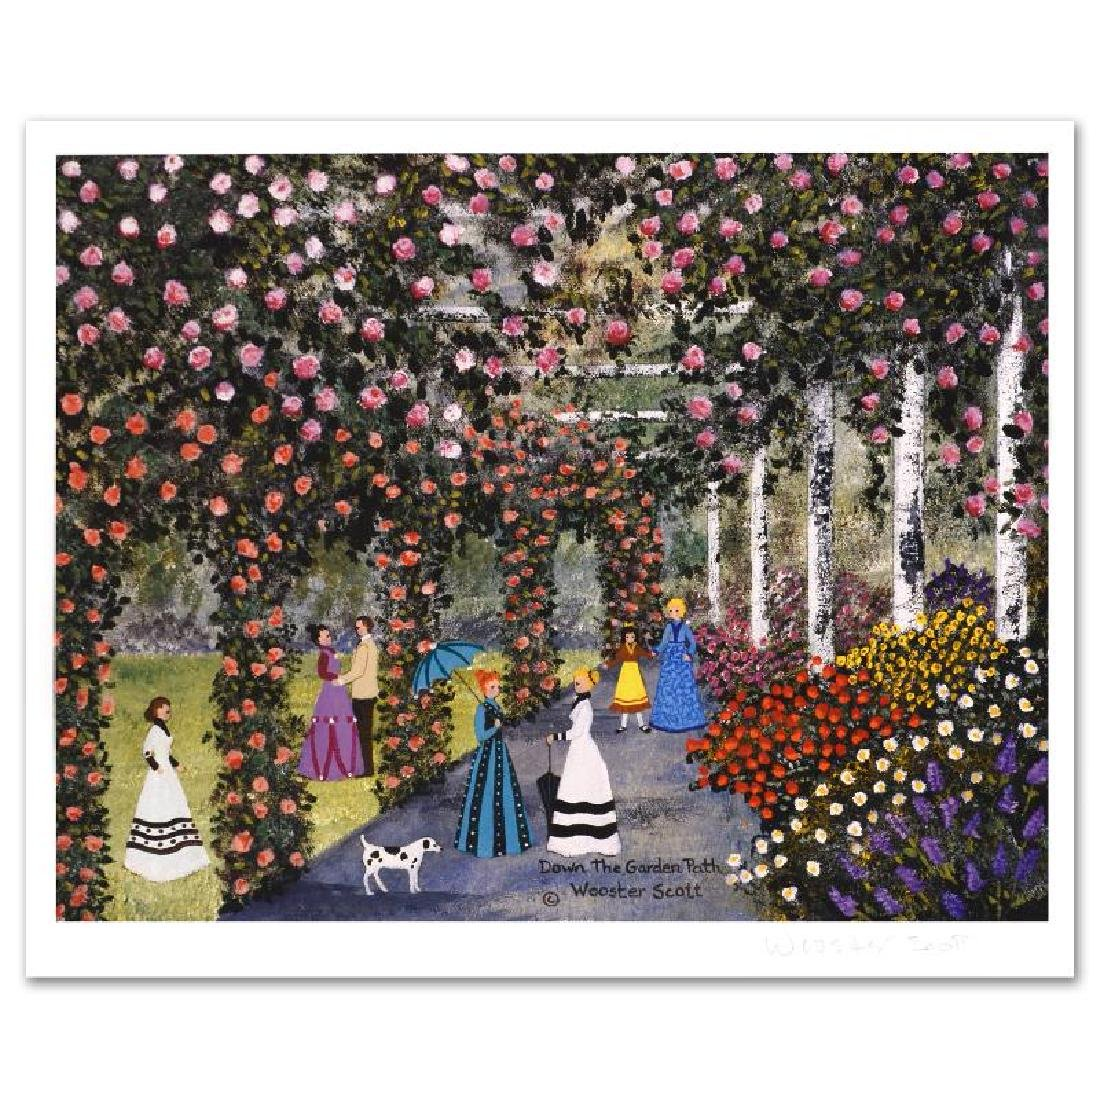 Down the Garden Path Limited Edition Lithograph by Jane